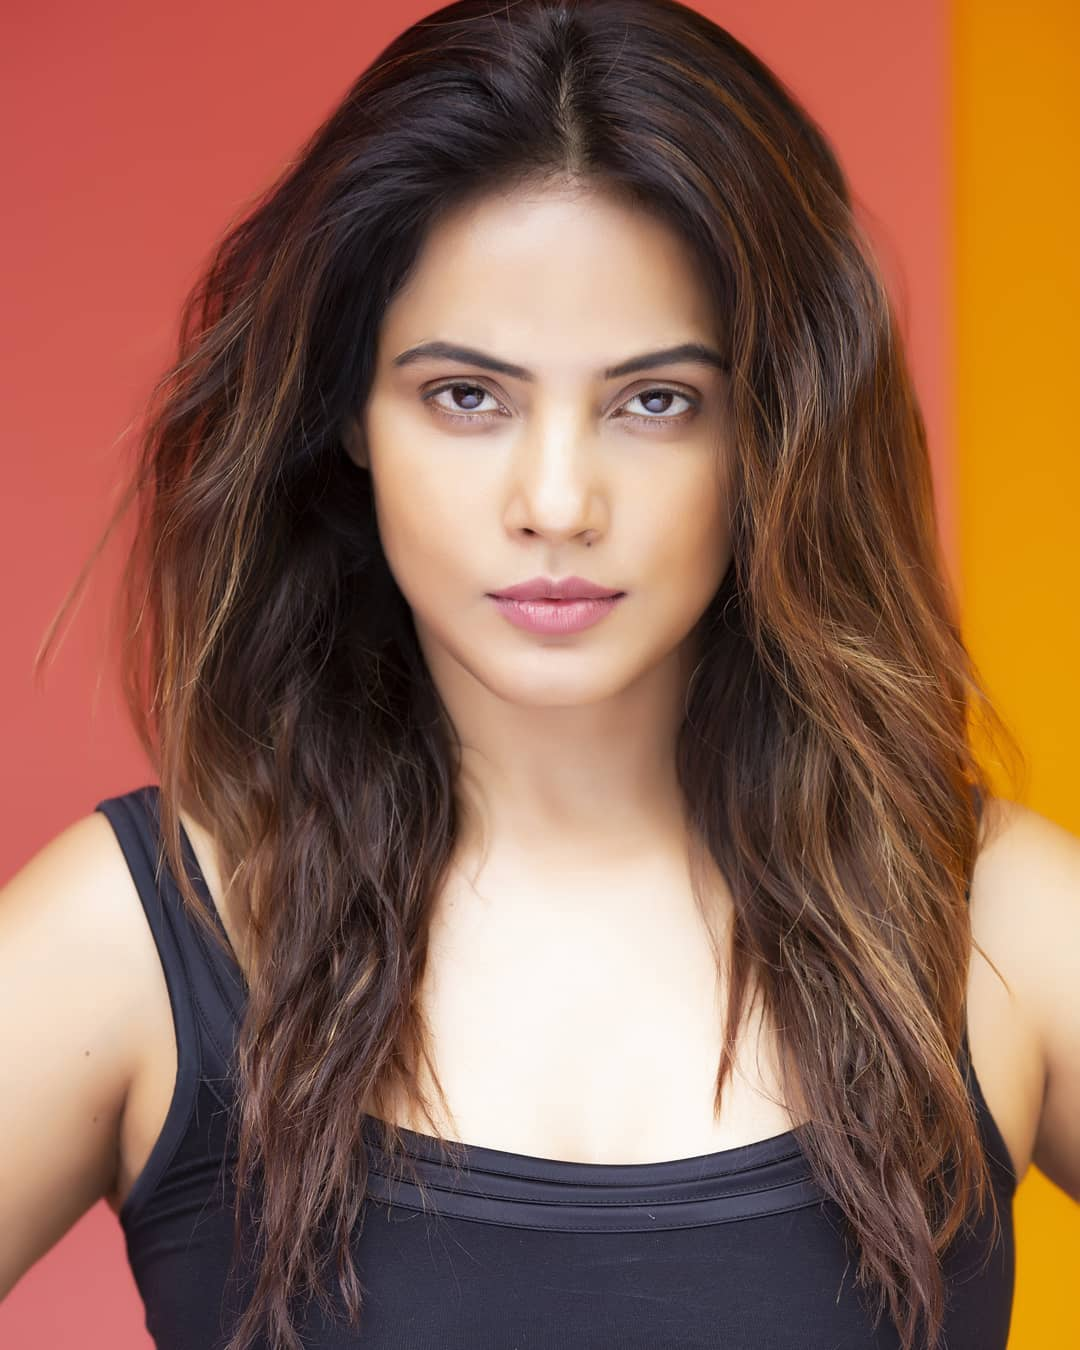 Neetu Chandra bollywood actress 26